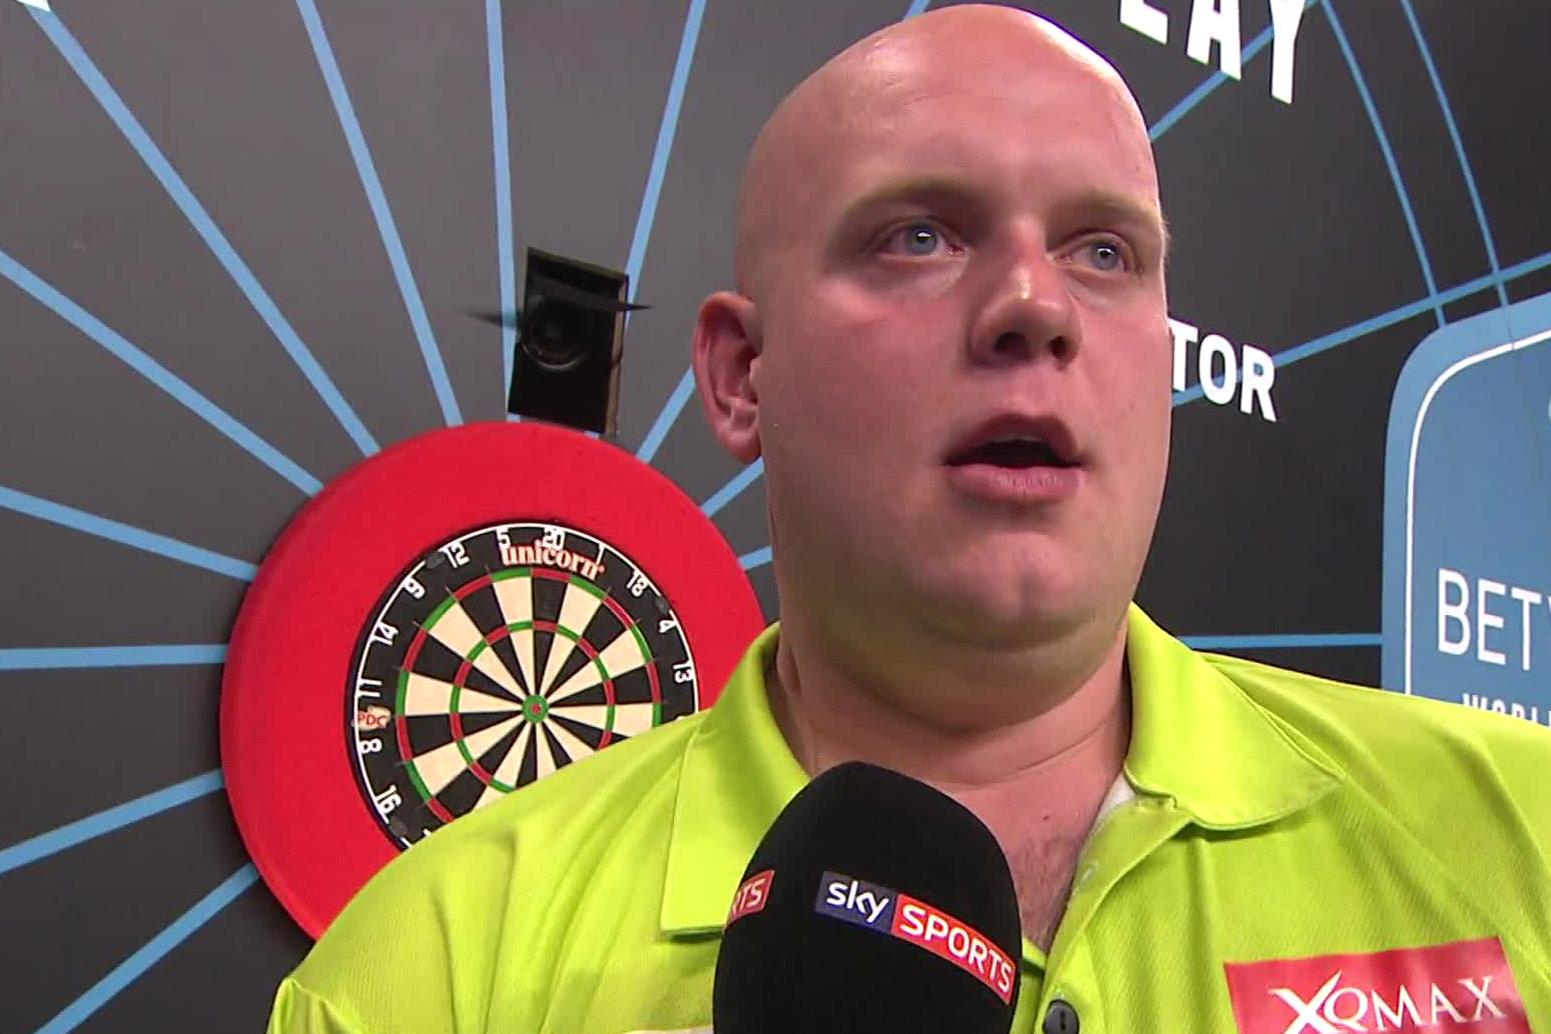 This darts World Champion hardly misses. I'm hoping to channel some of his energy this weekend.